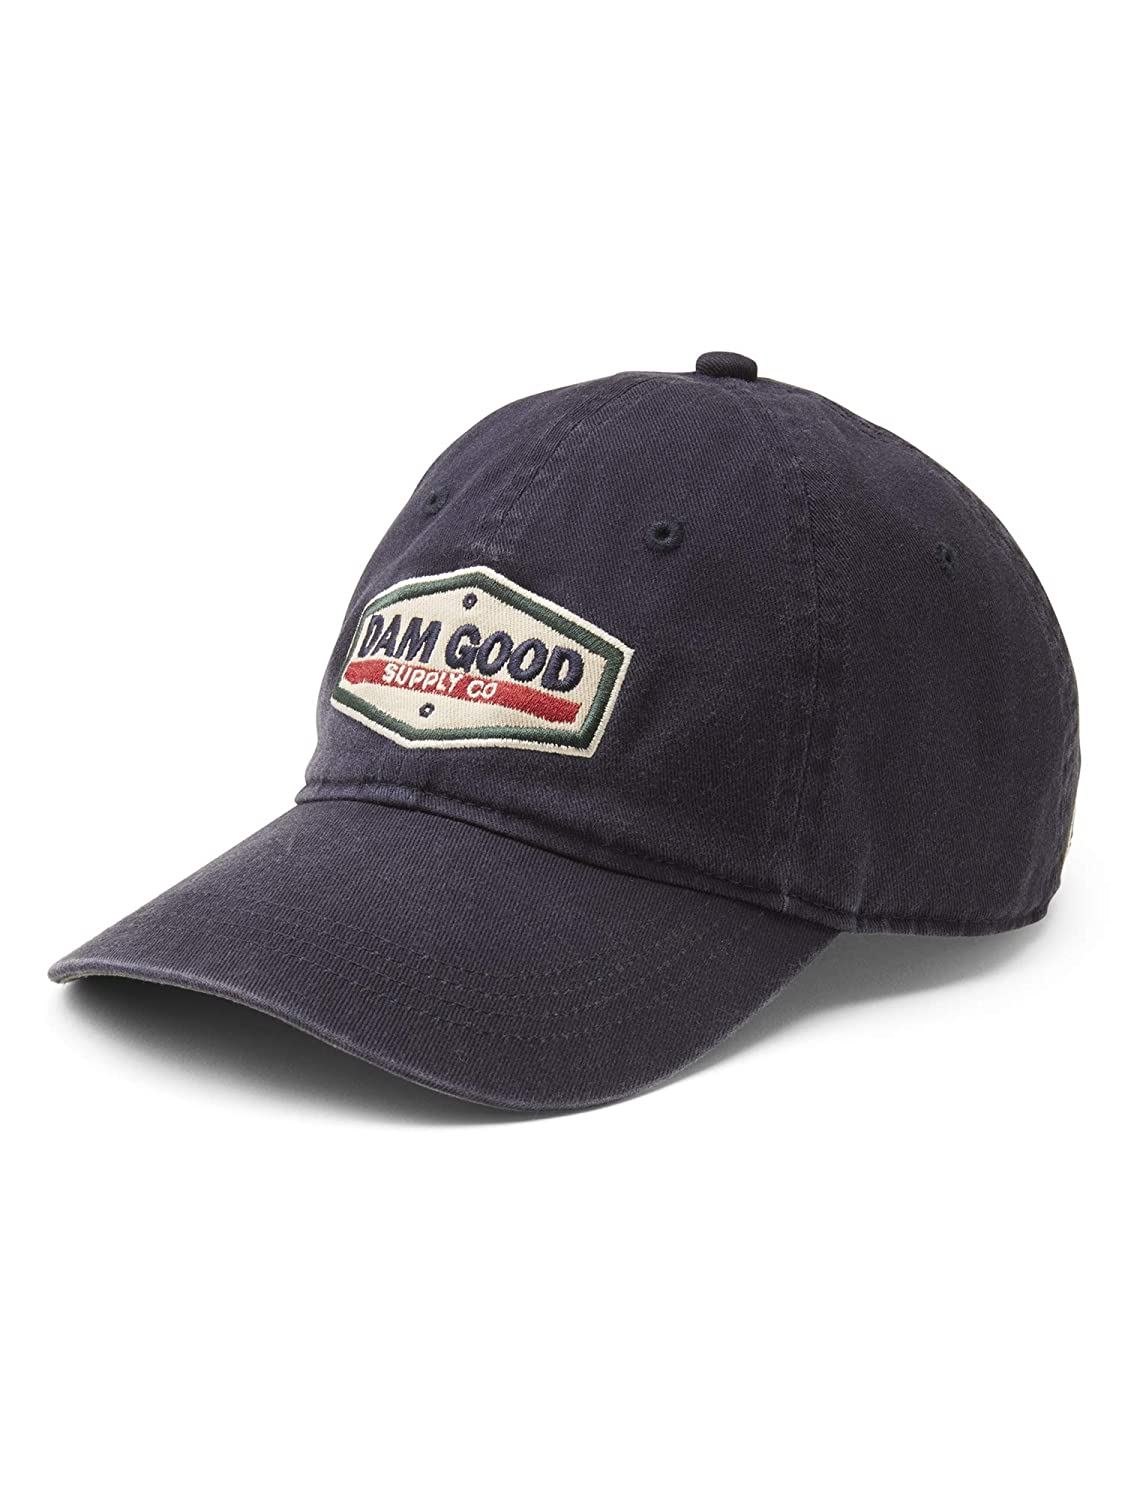 Dam Good Supply Co Mens Washed Brushed Twill Adjustable Cap